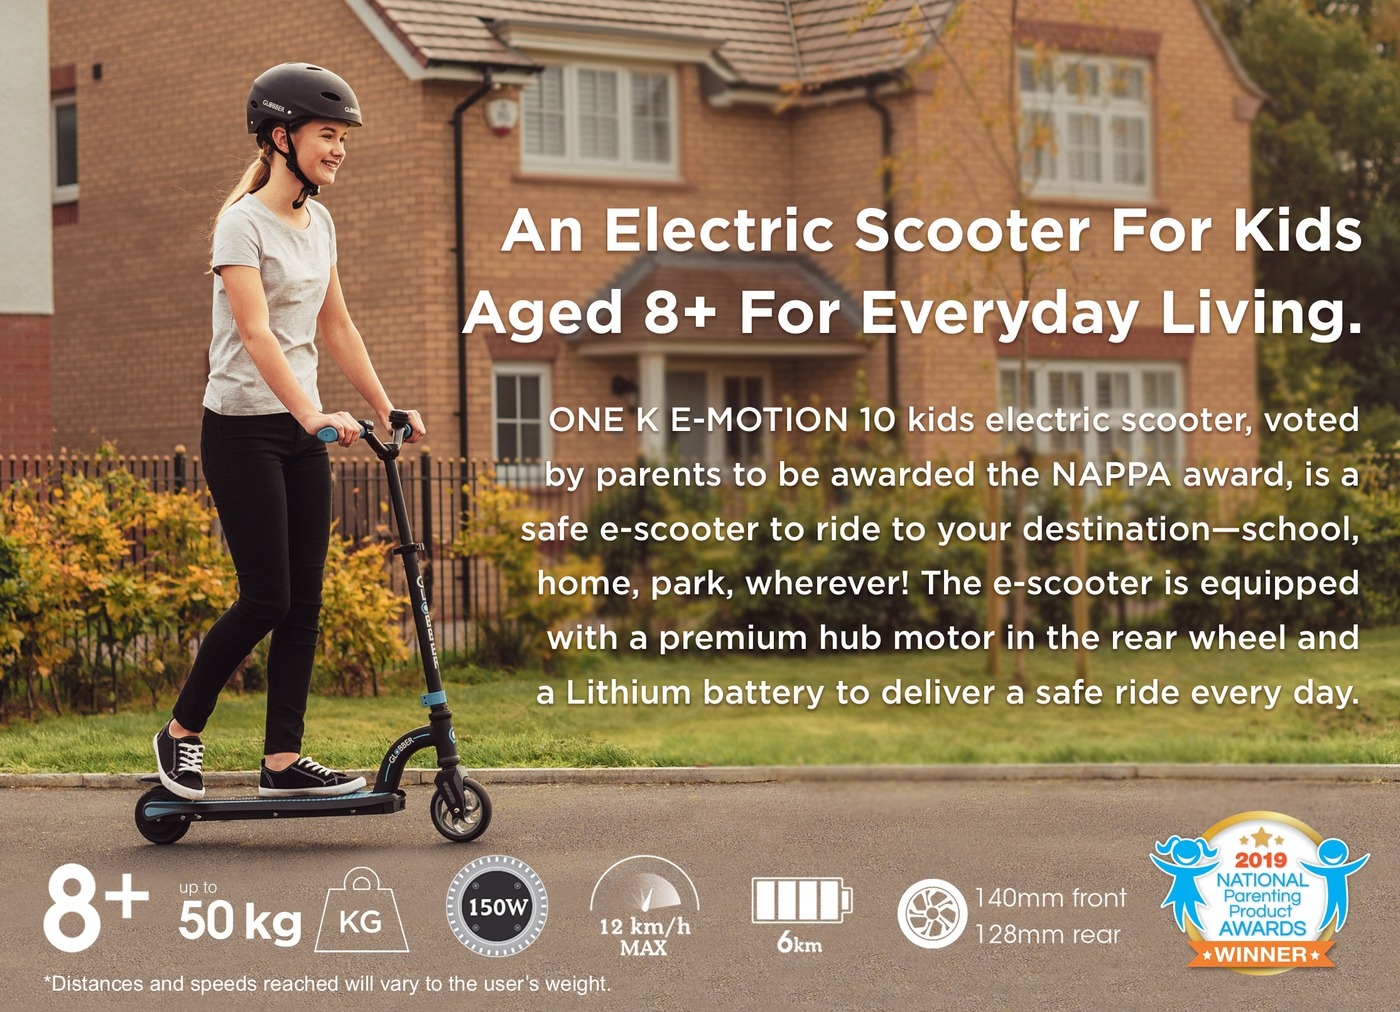 An Electric Scooter For Kids Aged 8+ For Everyday Living.